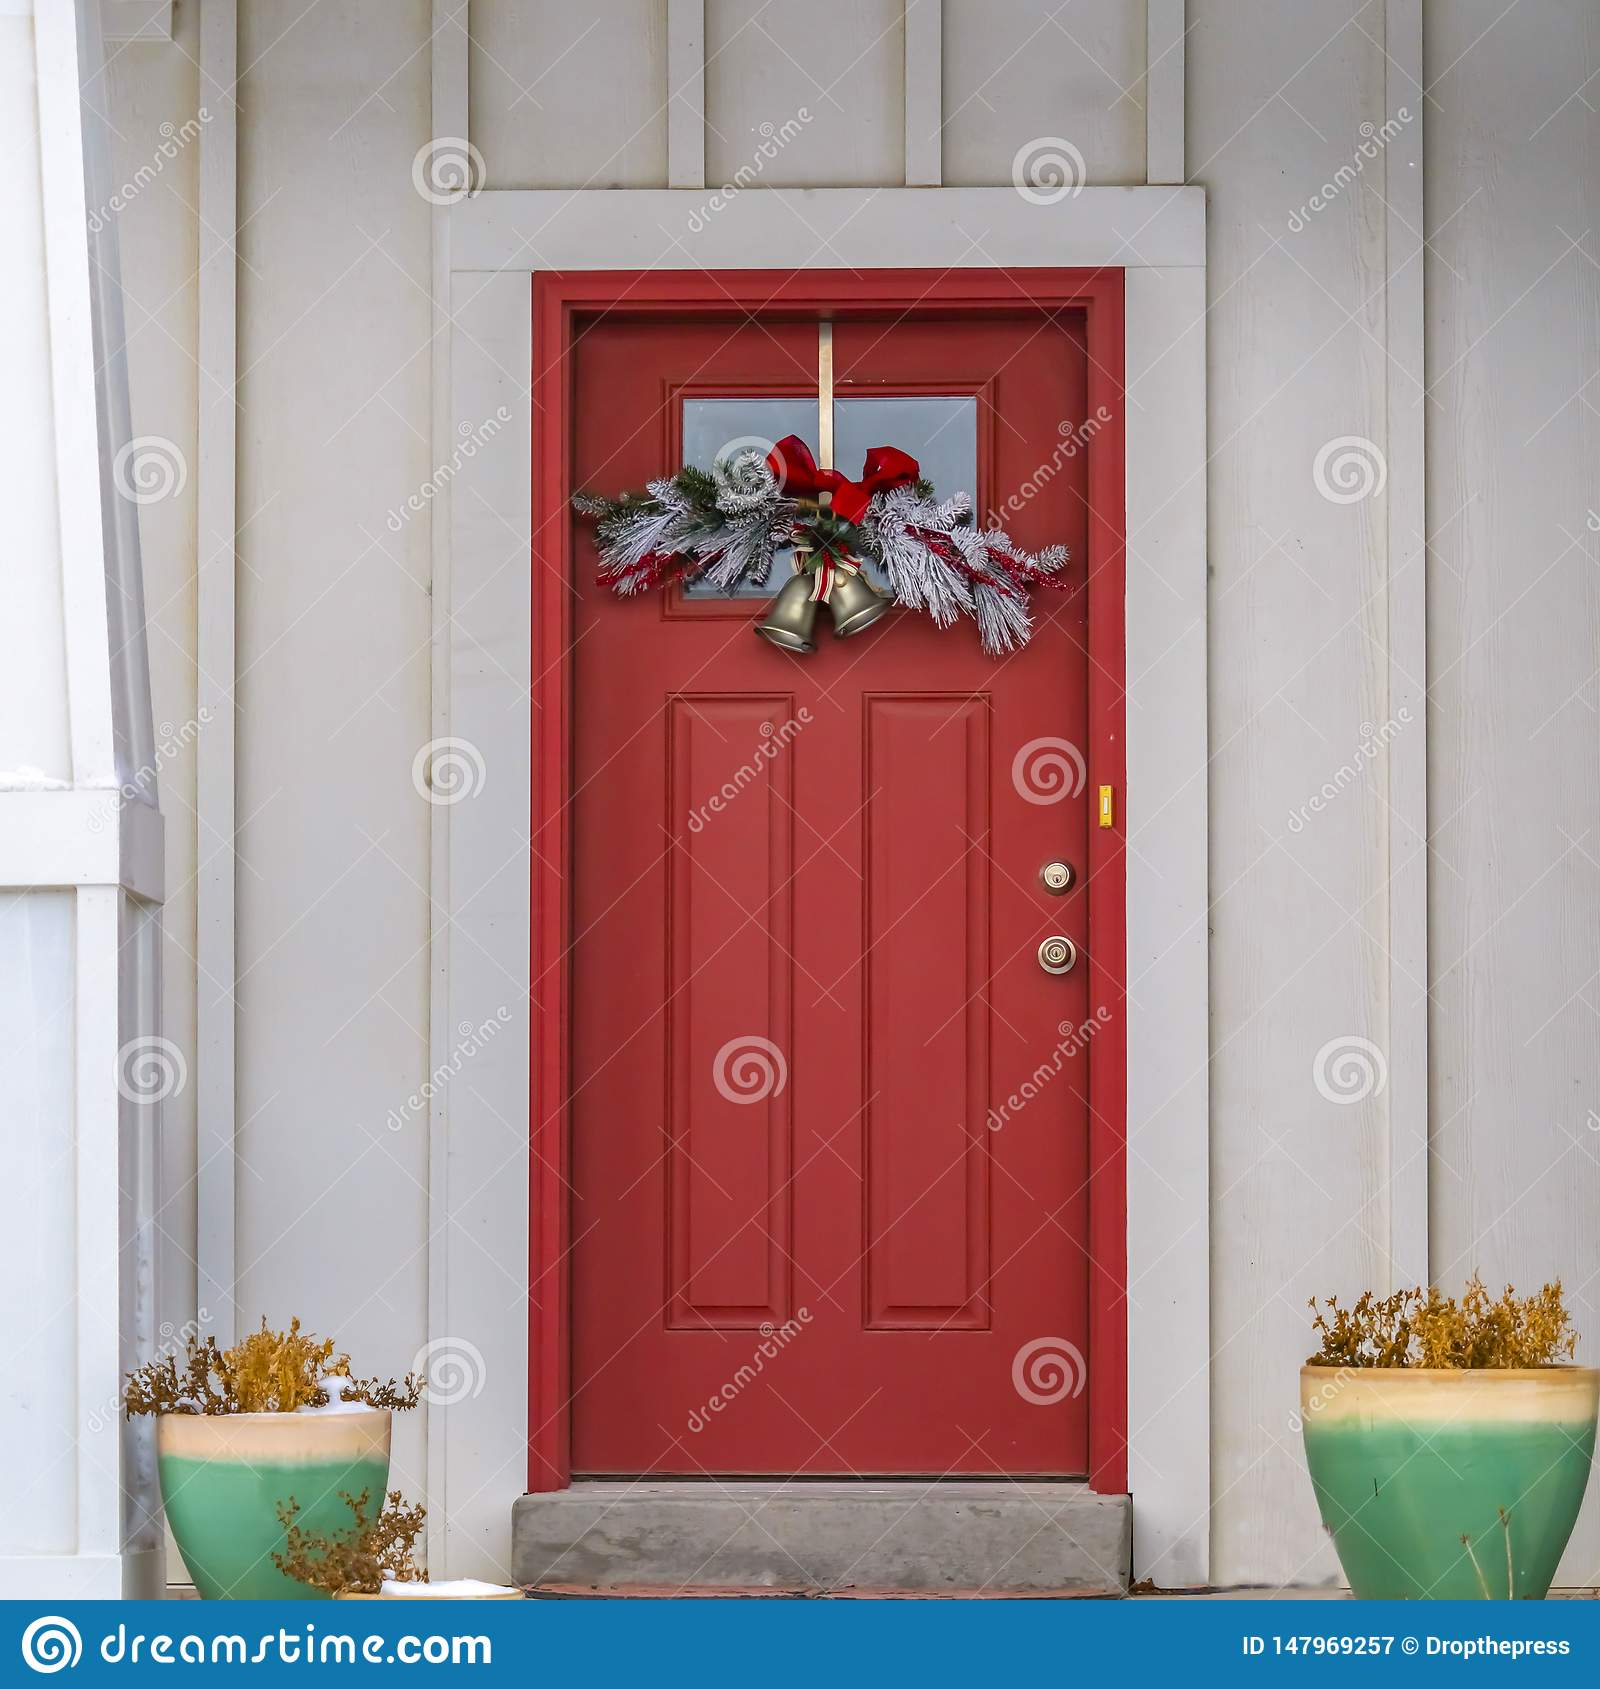 Clear Square Front Door With Glass Panel And Holiday Decoration Against A Ribbed White Wall Stock Image Image Of Facade Steps 147969257